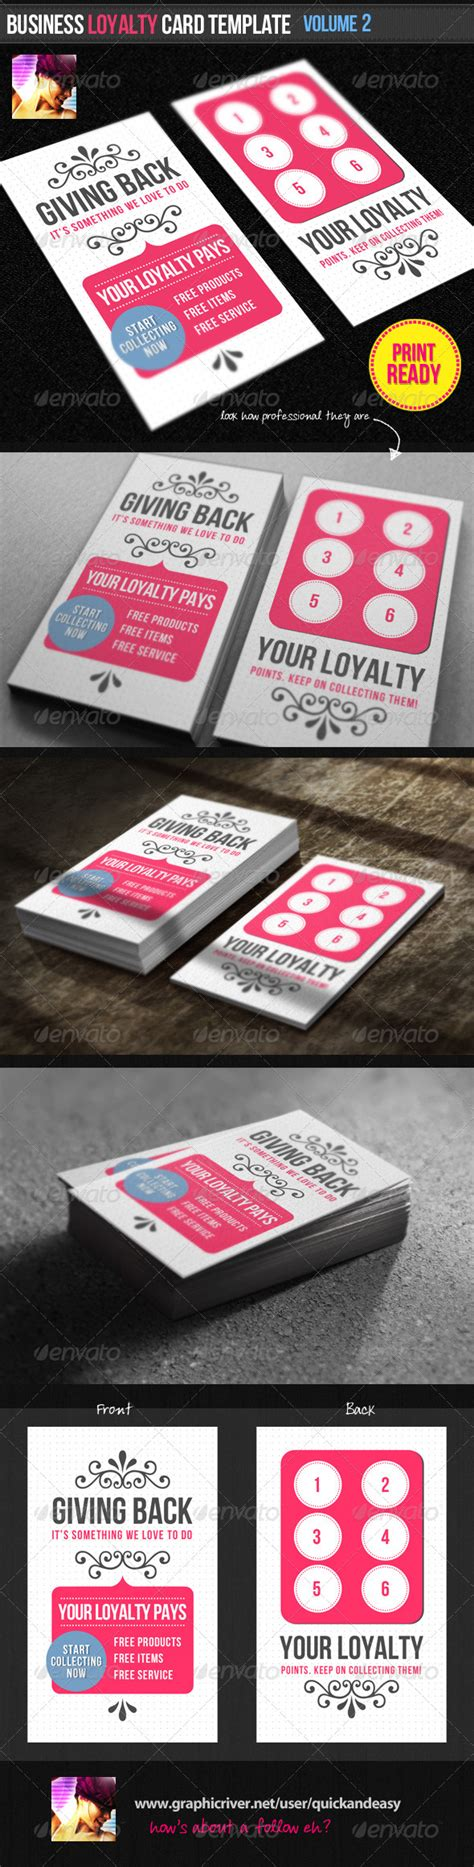 Loyalty Card Template Psd by Business Loyalty Card Template Vol 2 By Quickandeasy